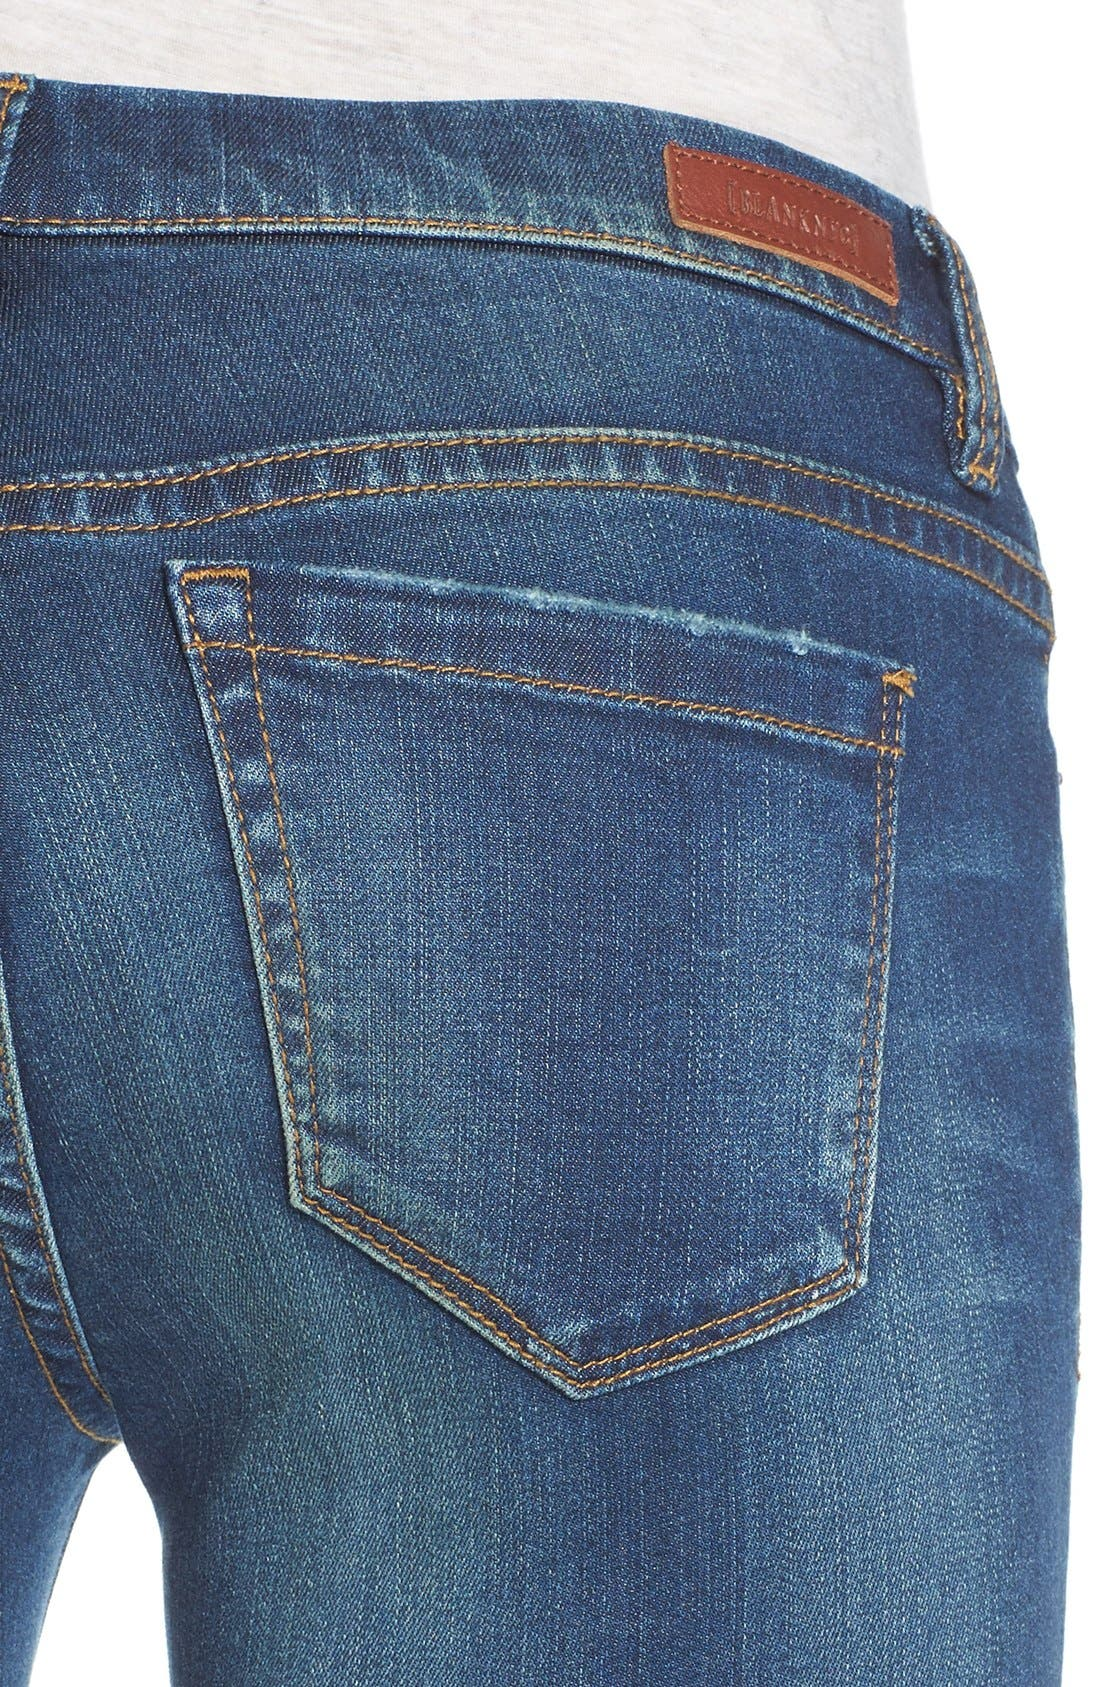 'Instagirl' Distressed Skinny Jeans,                             Alternate thumbnail 3, color,